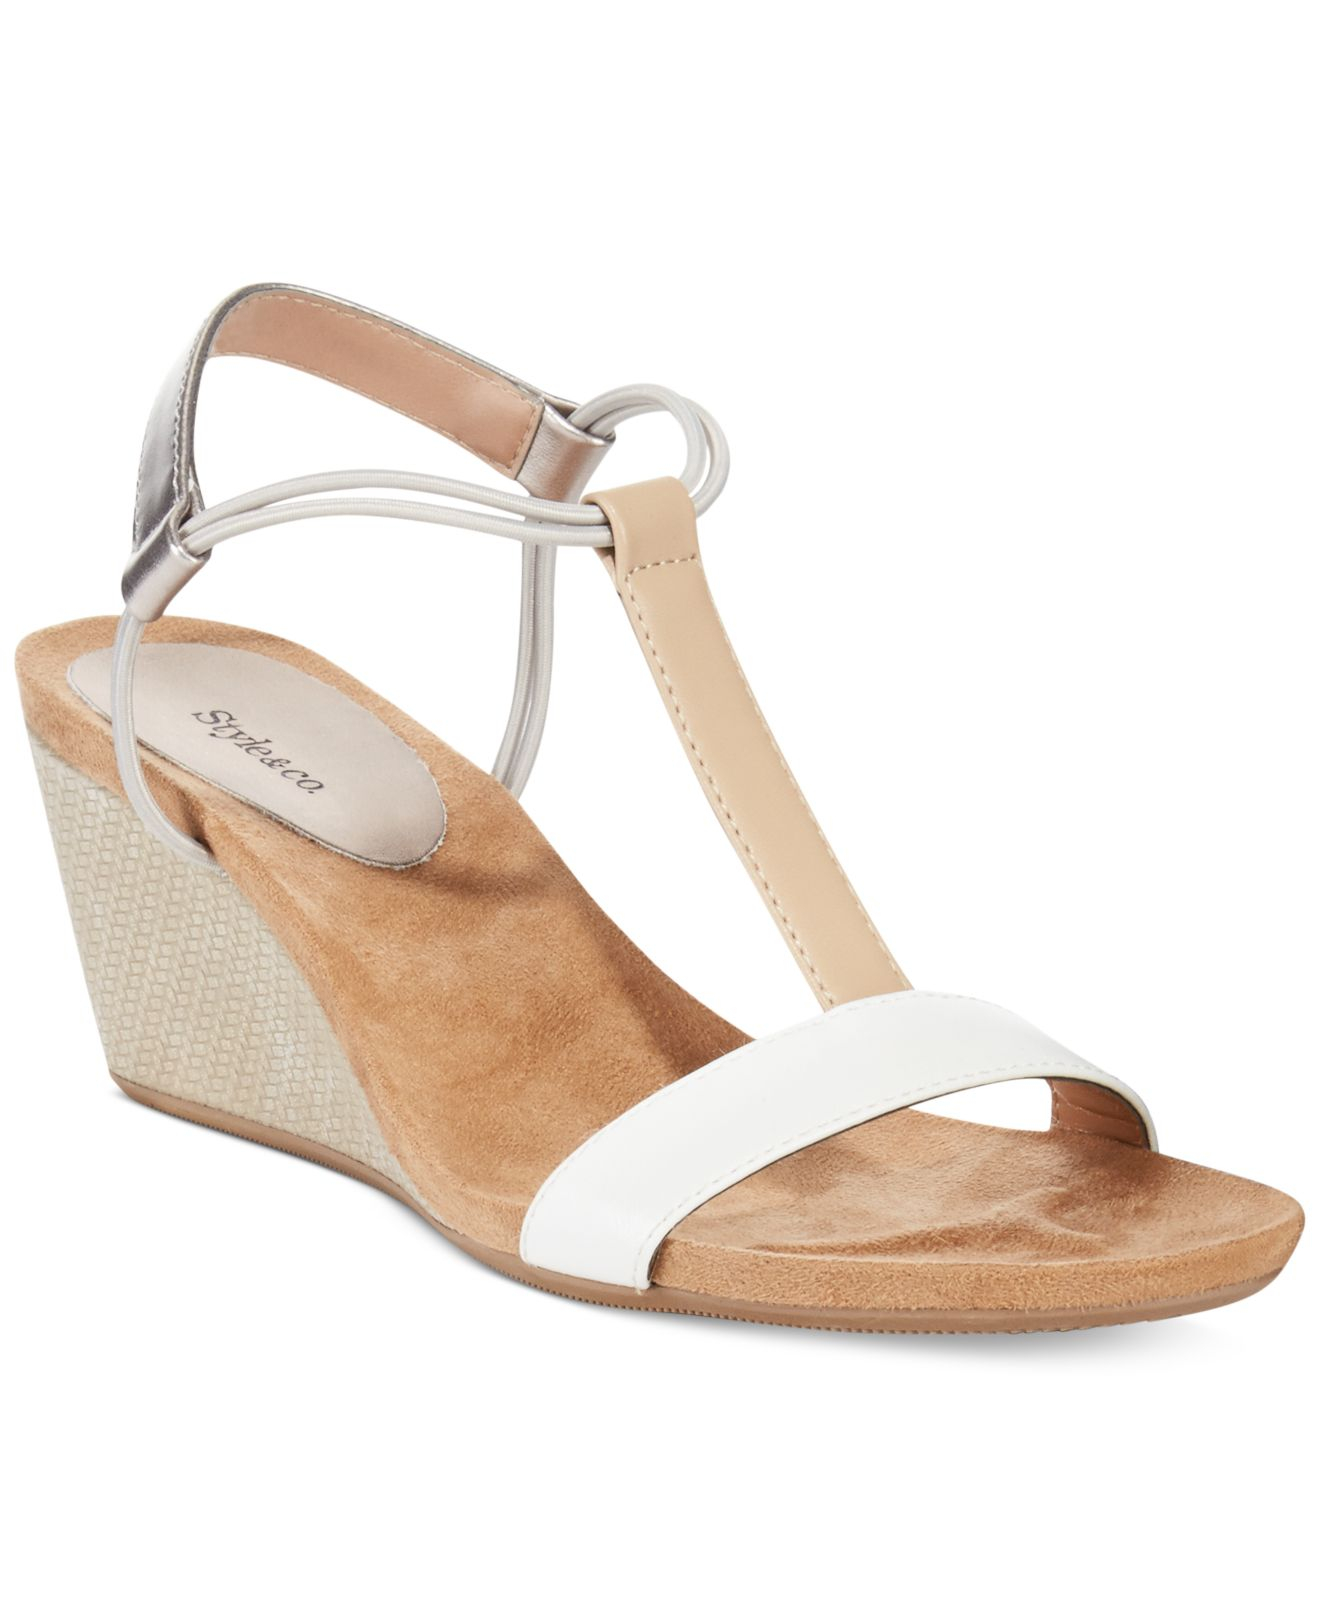 Jessica Simpson White Wedge Shoes